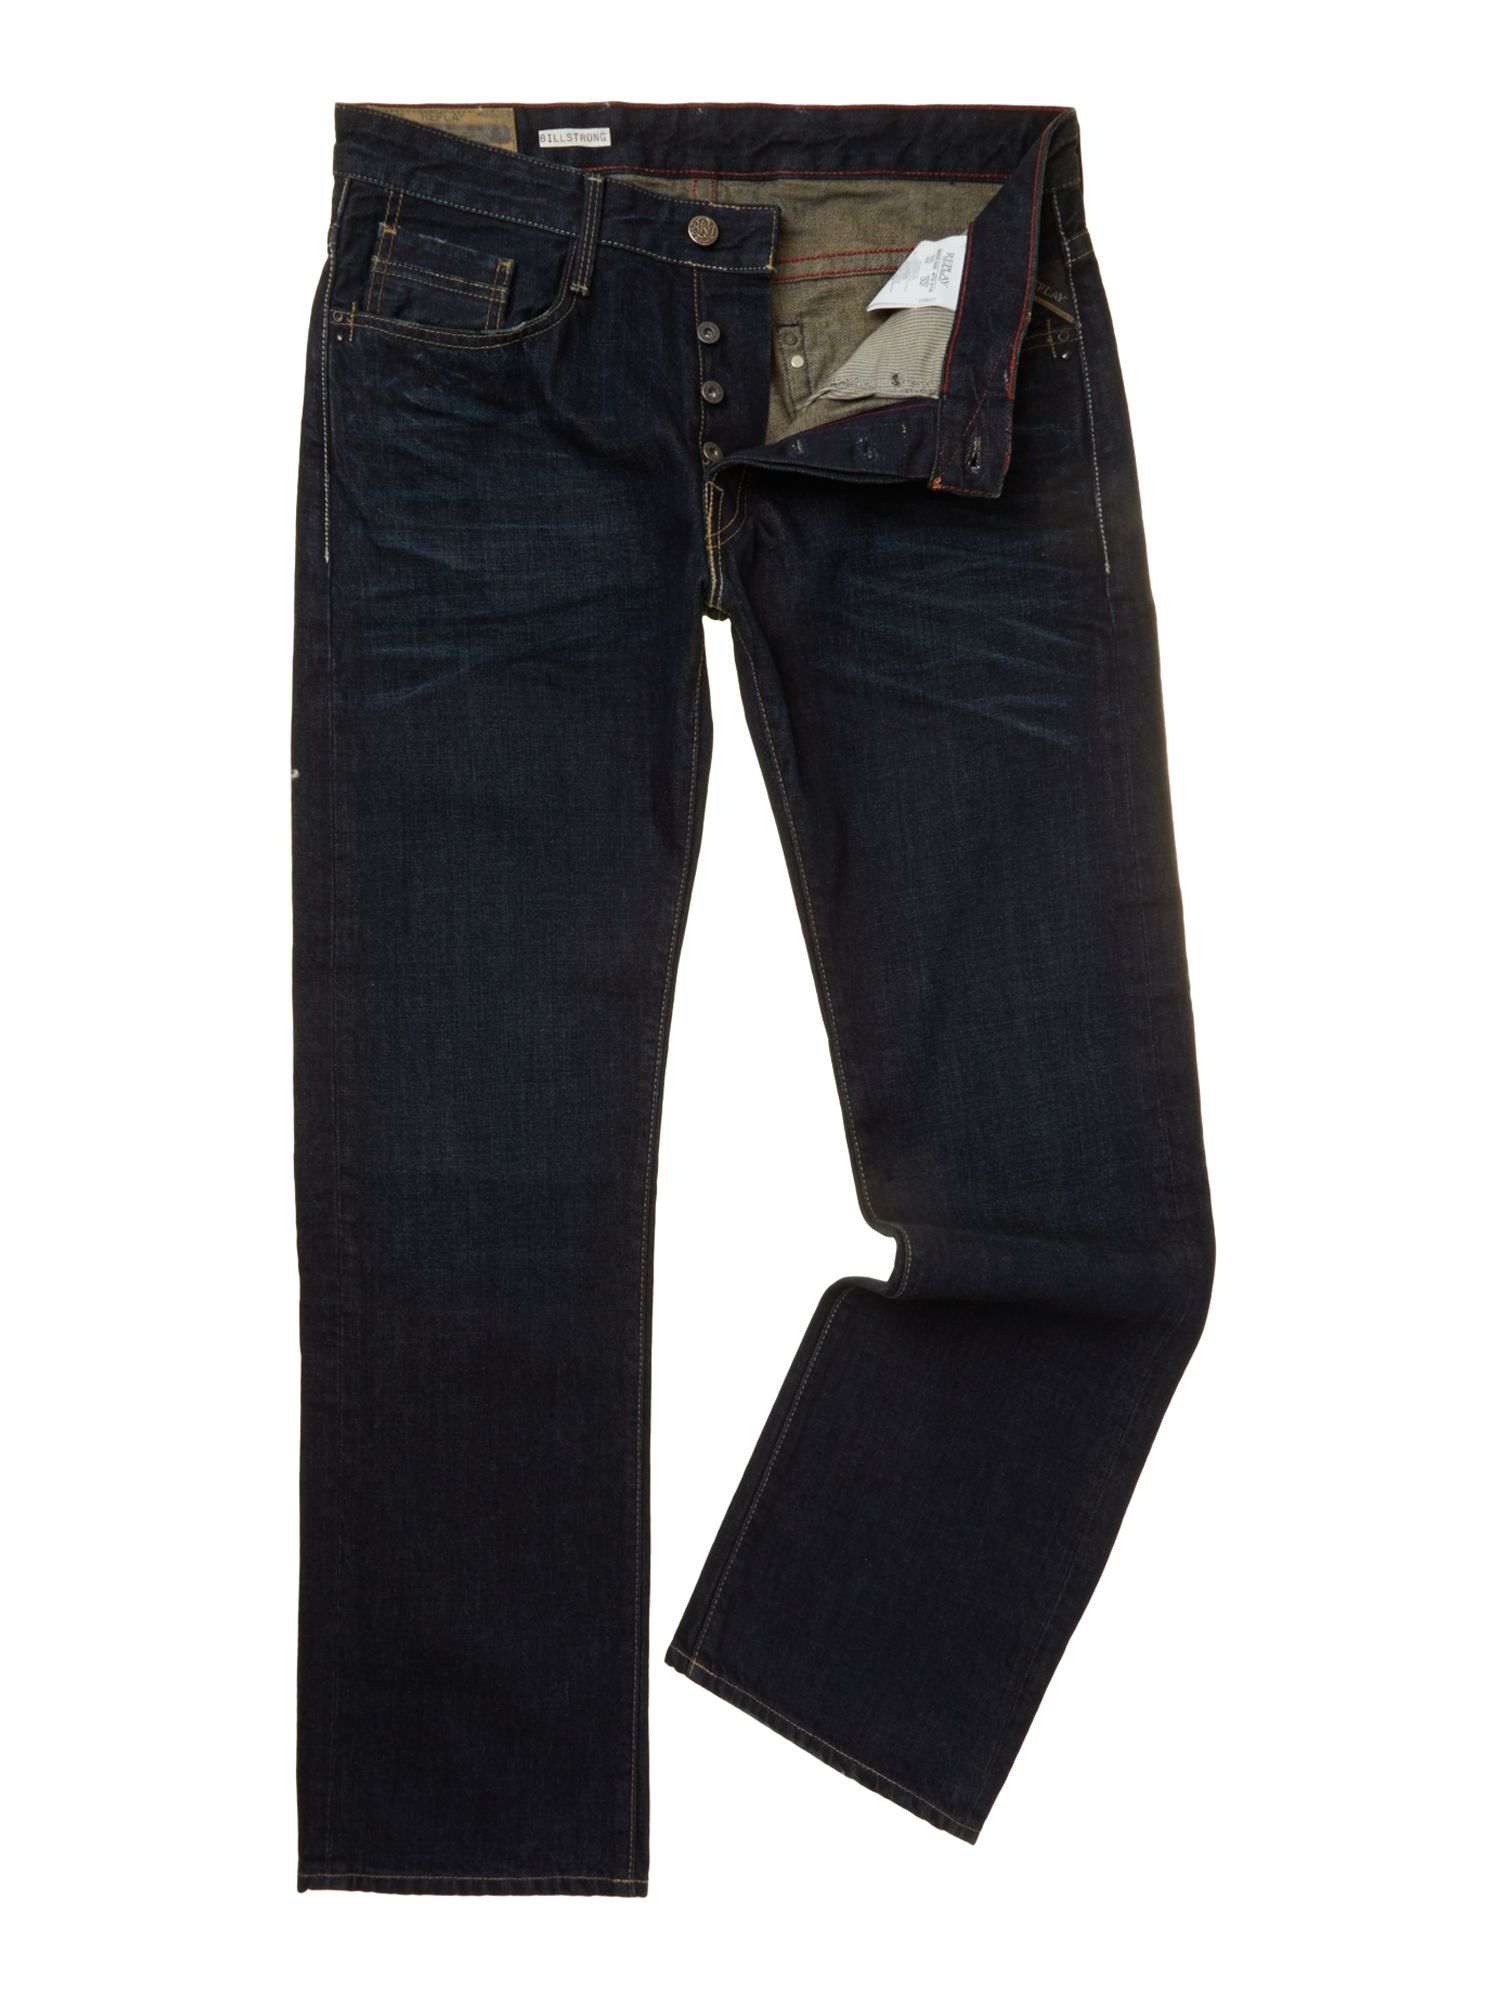 Billstrong classic fit denim jeans